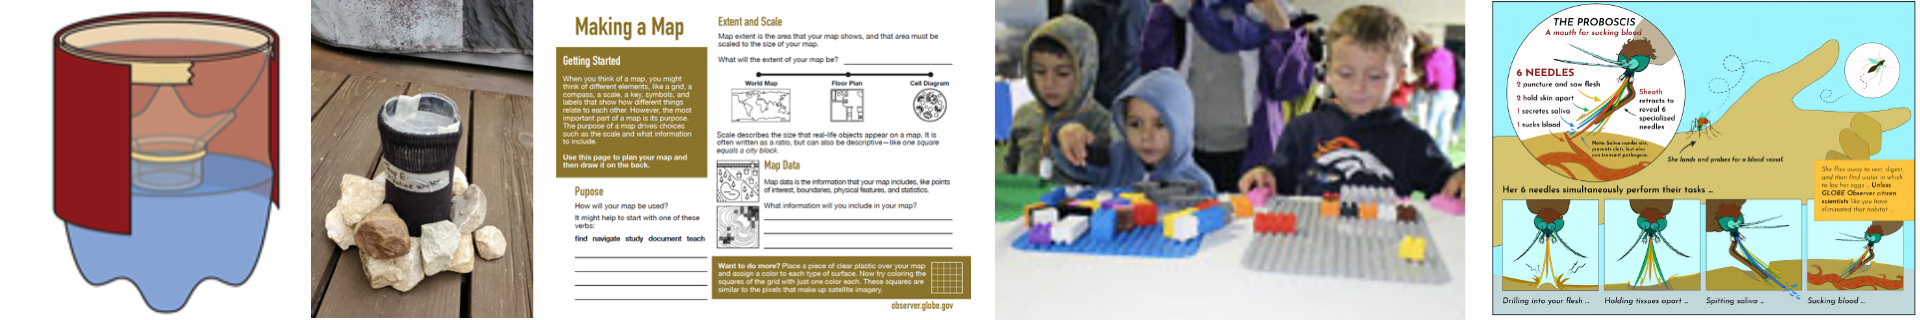 Composite of create activities, from left: diagram of a mosquito larvae trap, an image of a completed trap, the Making a Map instruction sheet, children building landscapes with building blocks, a mosquito poster